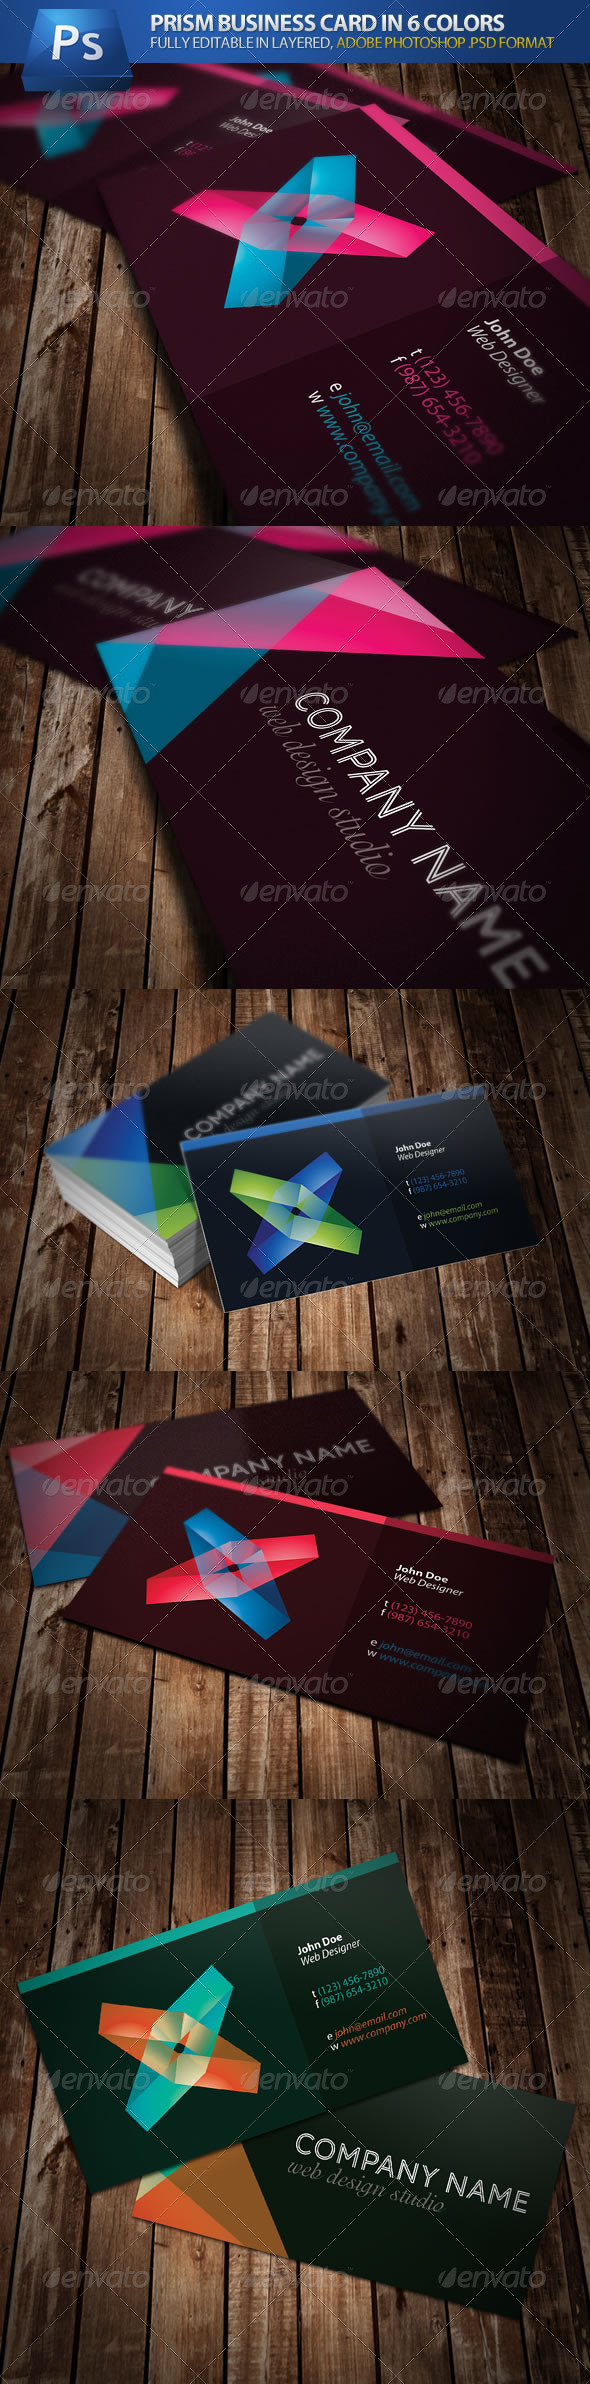 Prism Business Card - Creative Business Cards